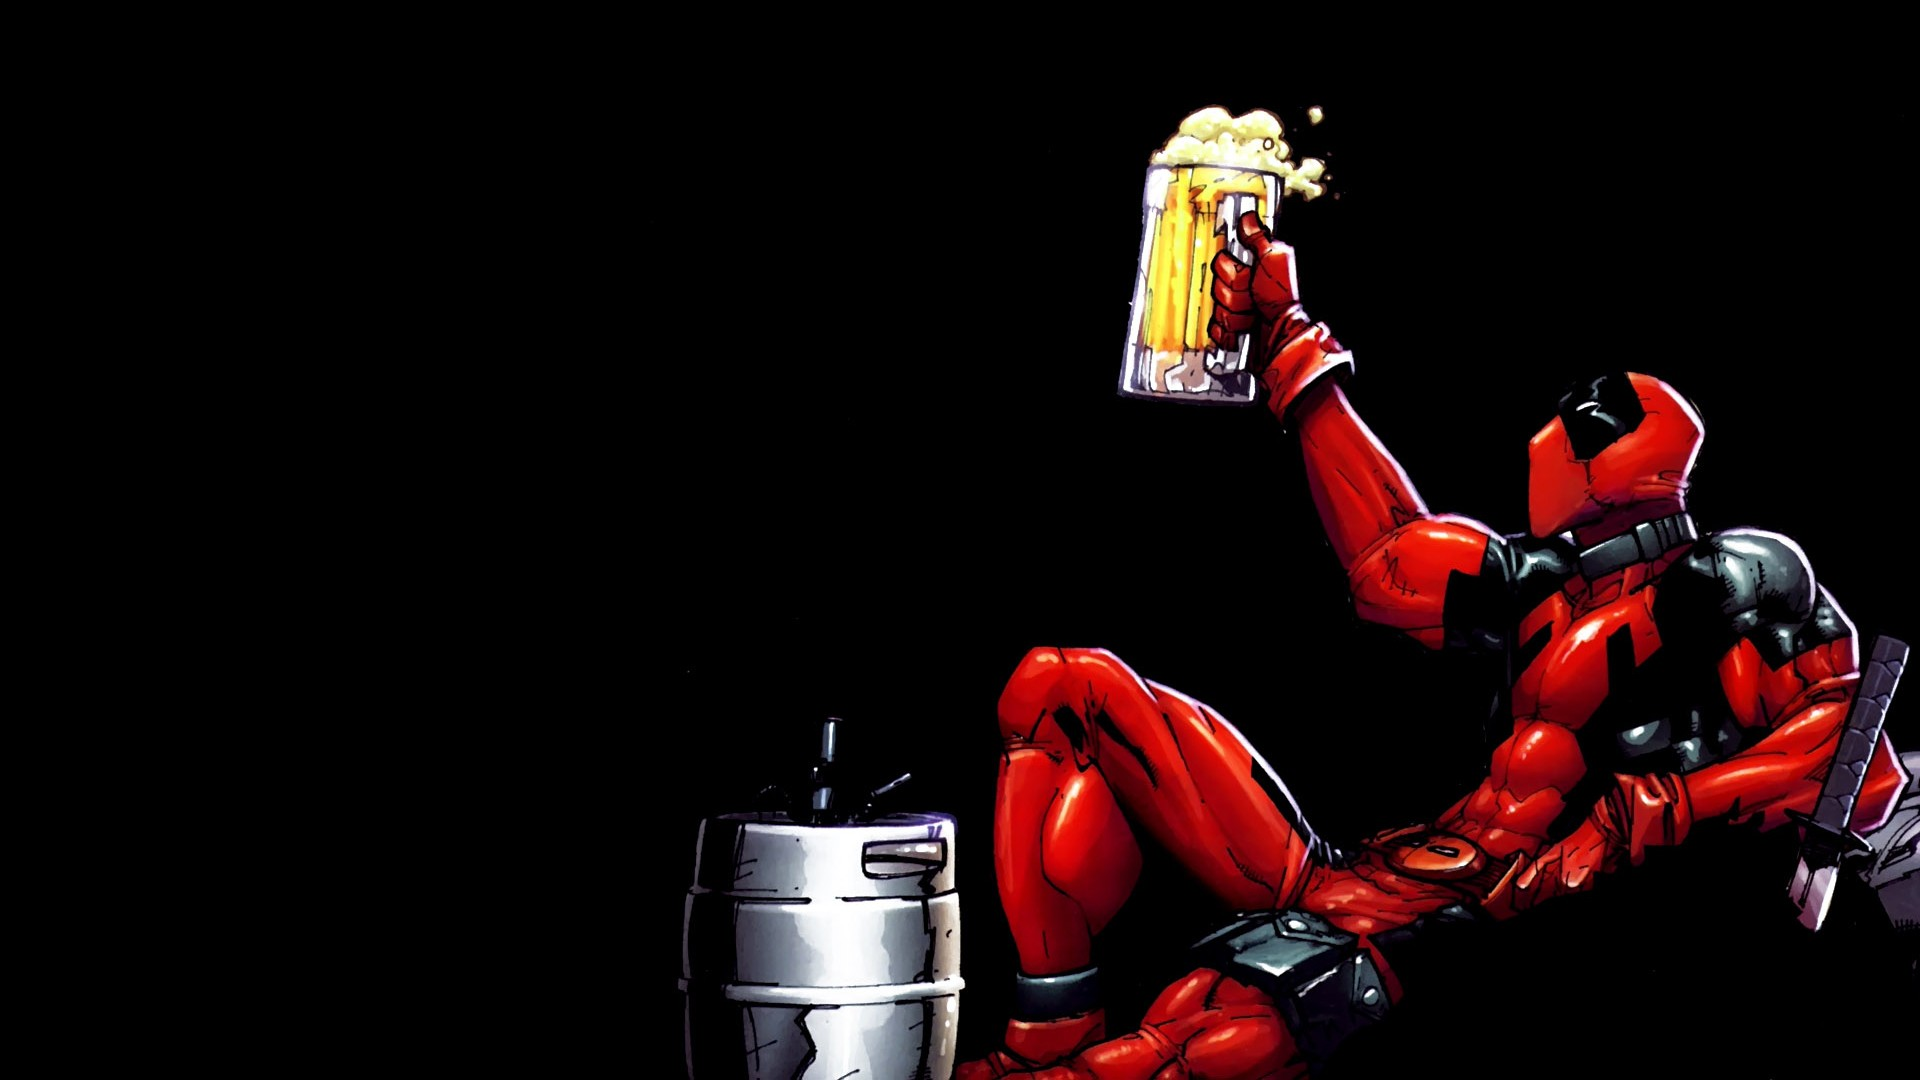 Deadpool wallpaper HD ·① Download free wallpapers for ...